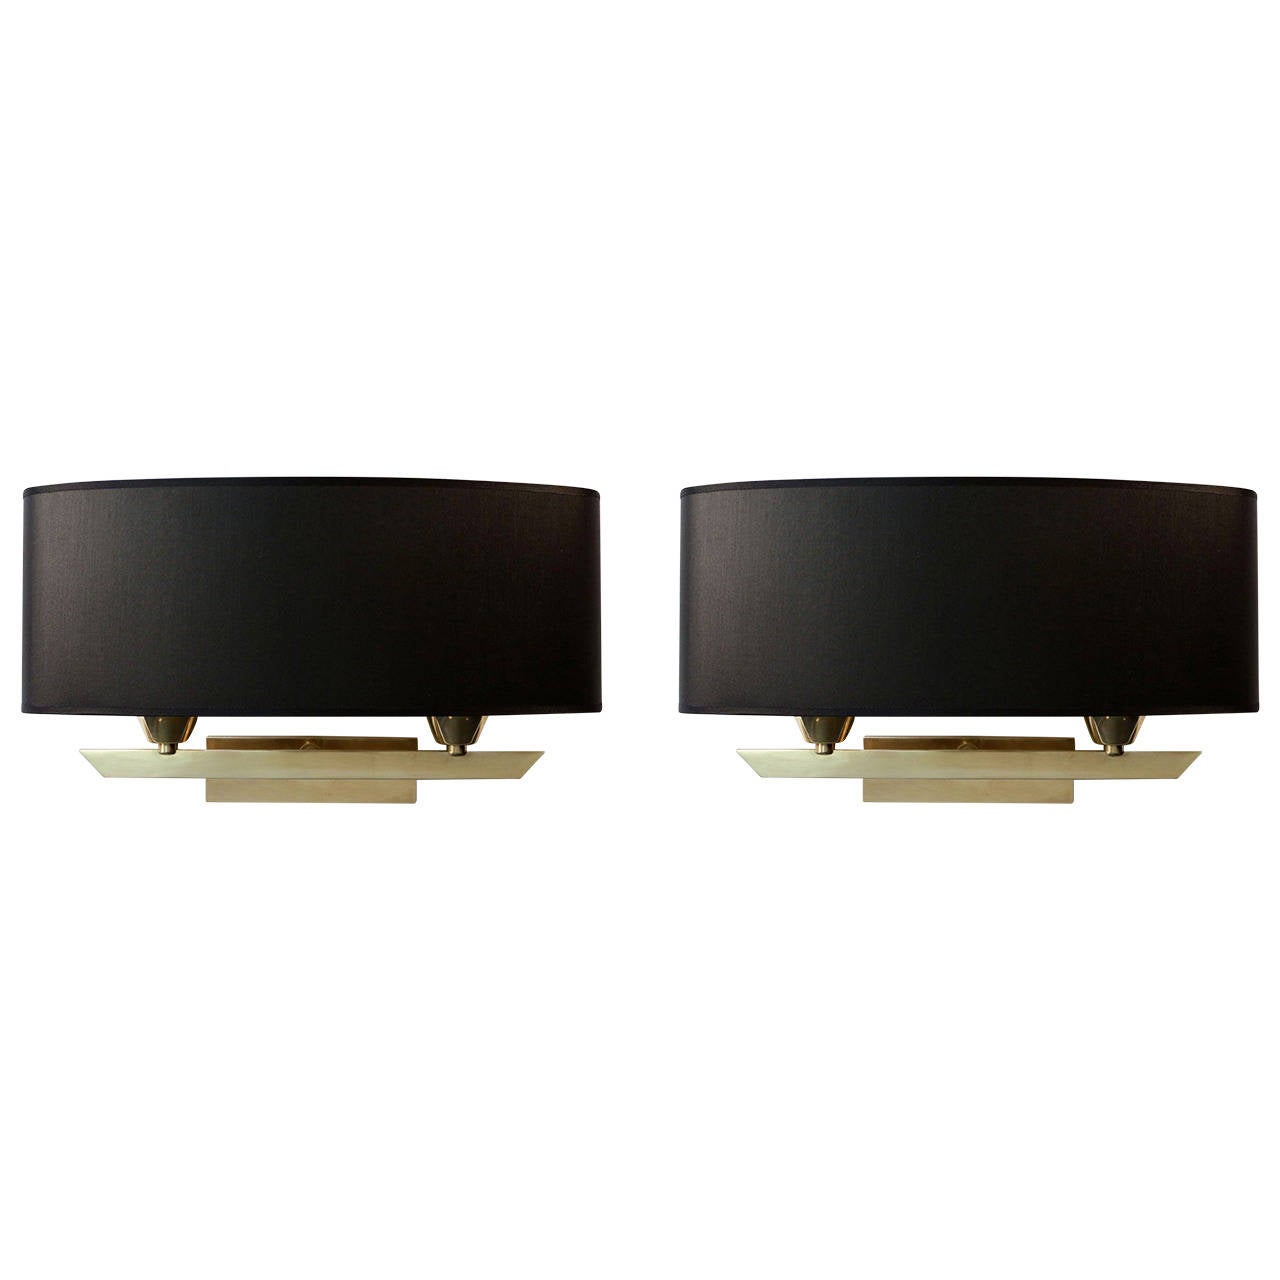 pair of 1950s directoire sconces by maison arlus 1950 for sale at 1stdibs. Black Bedroom Furniture Sets. Home Design Ideas